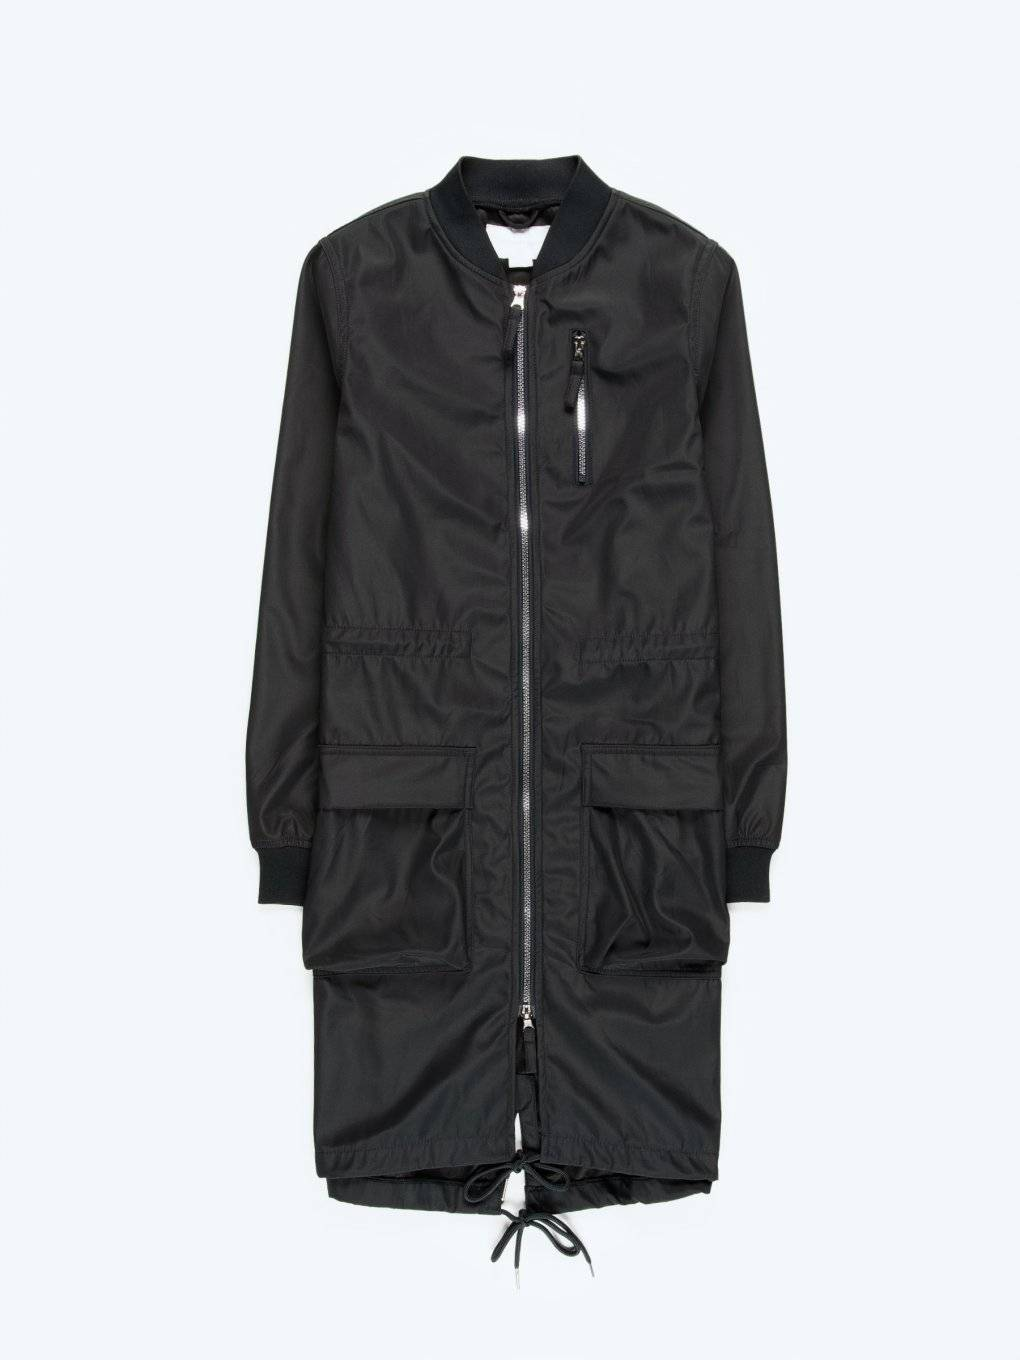 Parka jacket with print on back